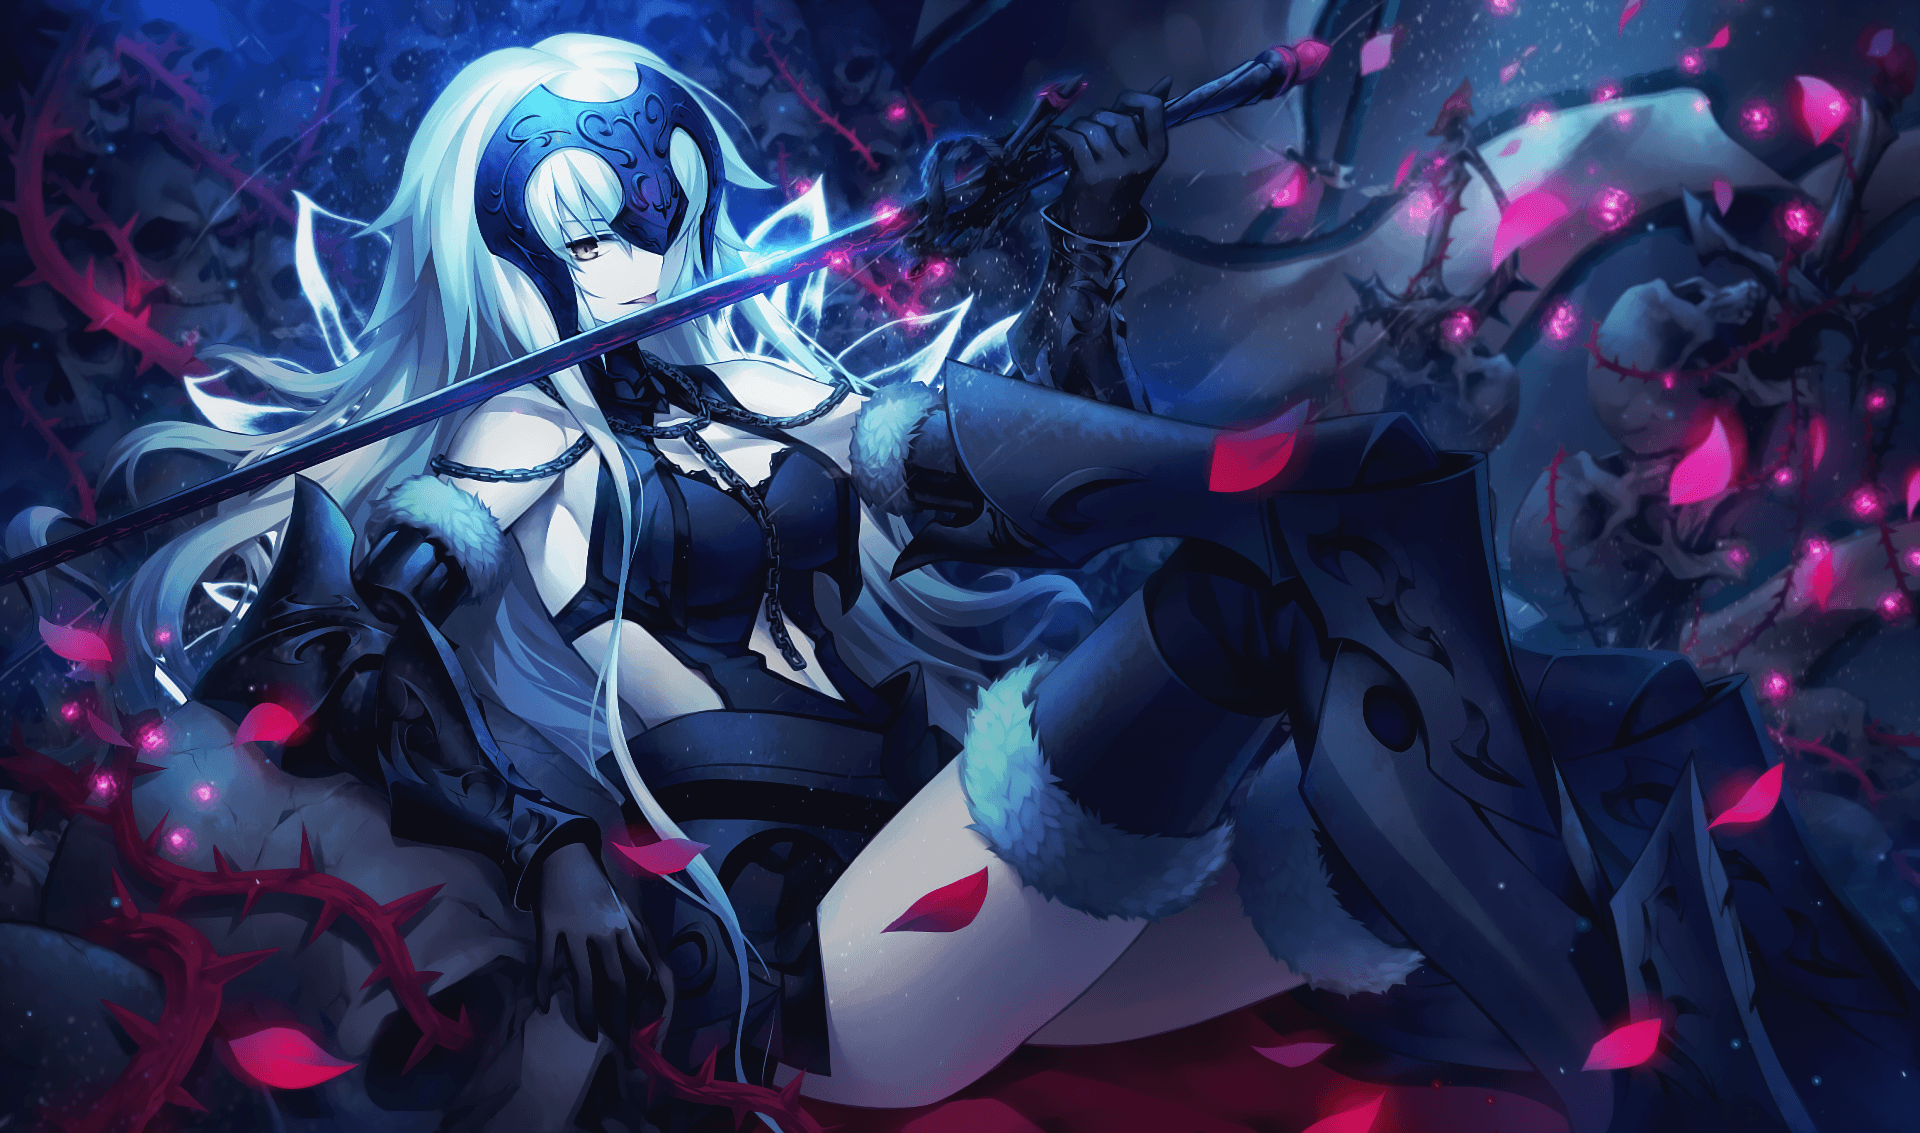 Jeanne Alter Wallpapers Wallpaper Cave